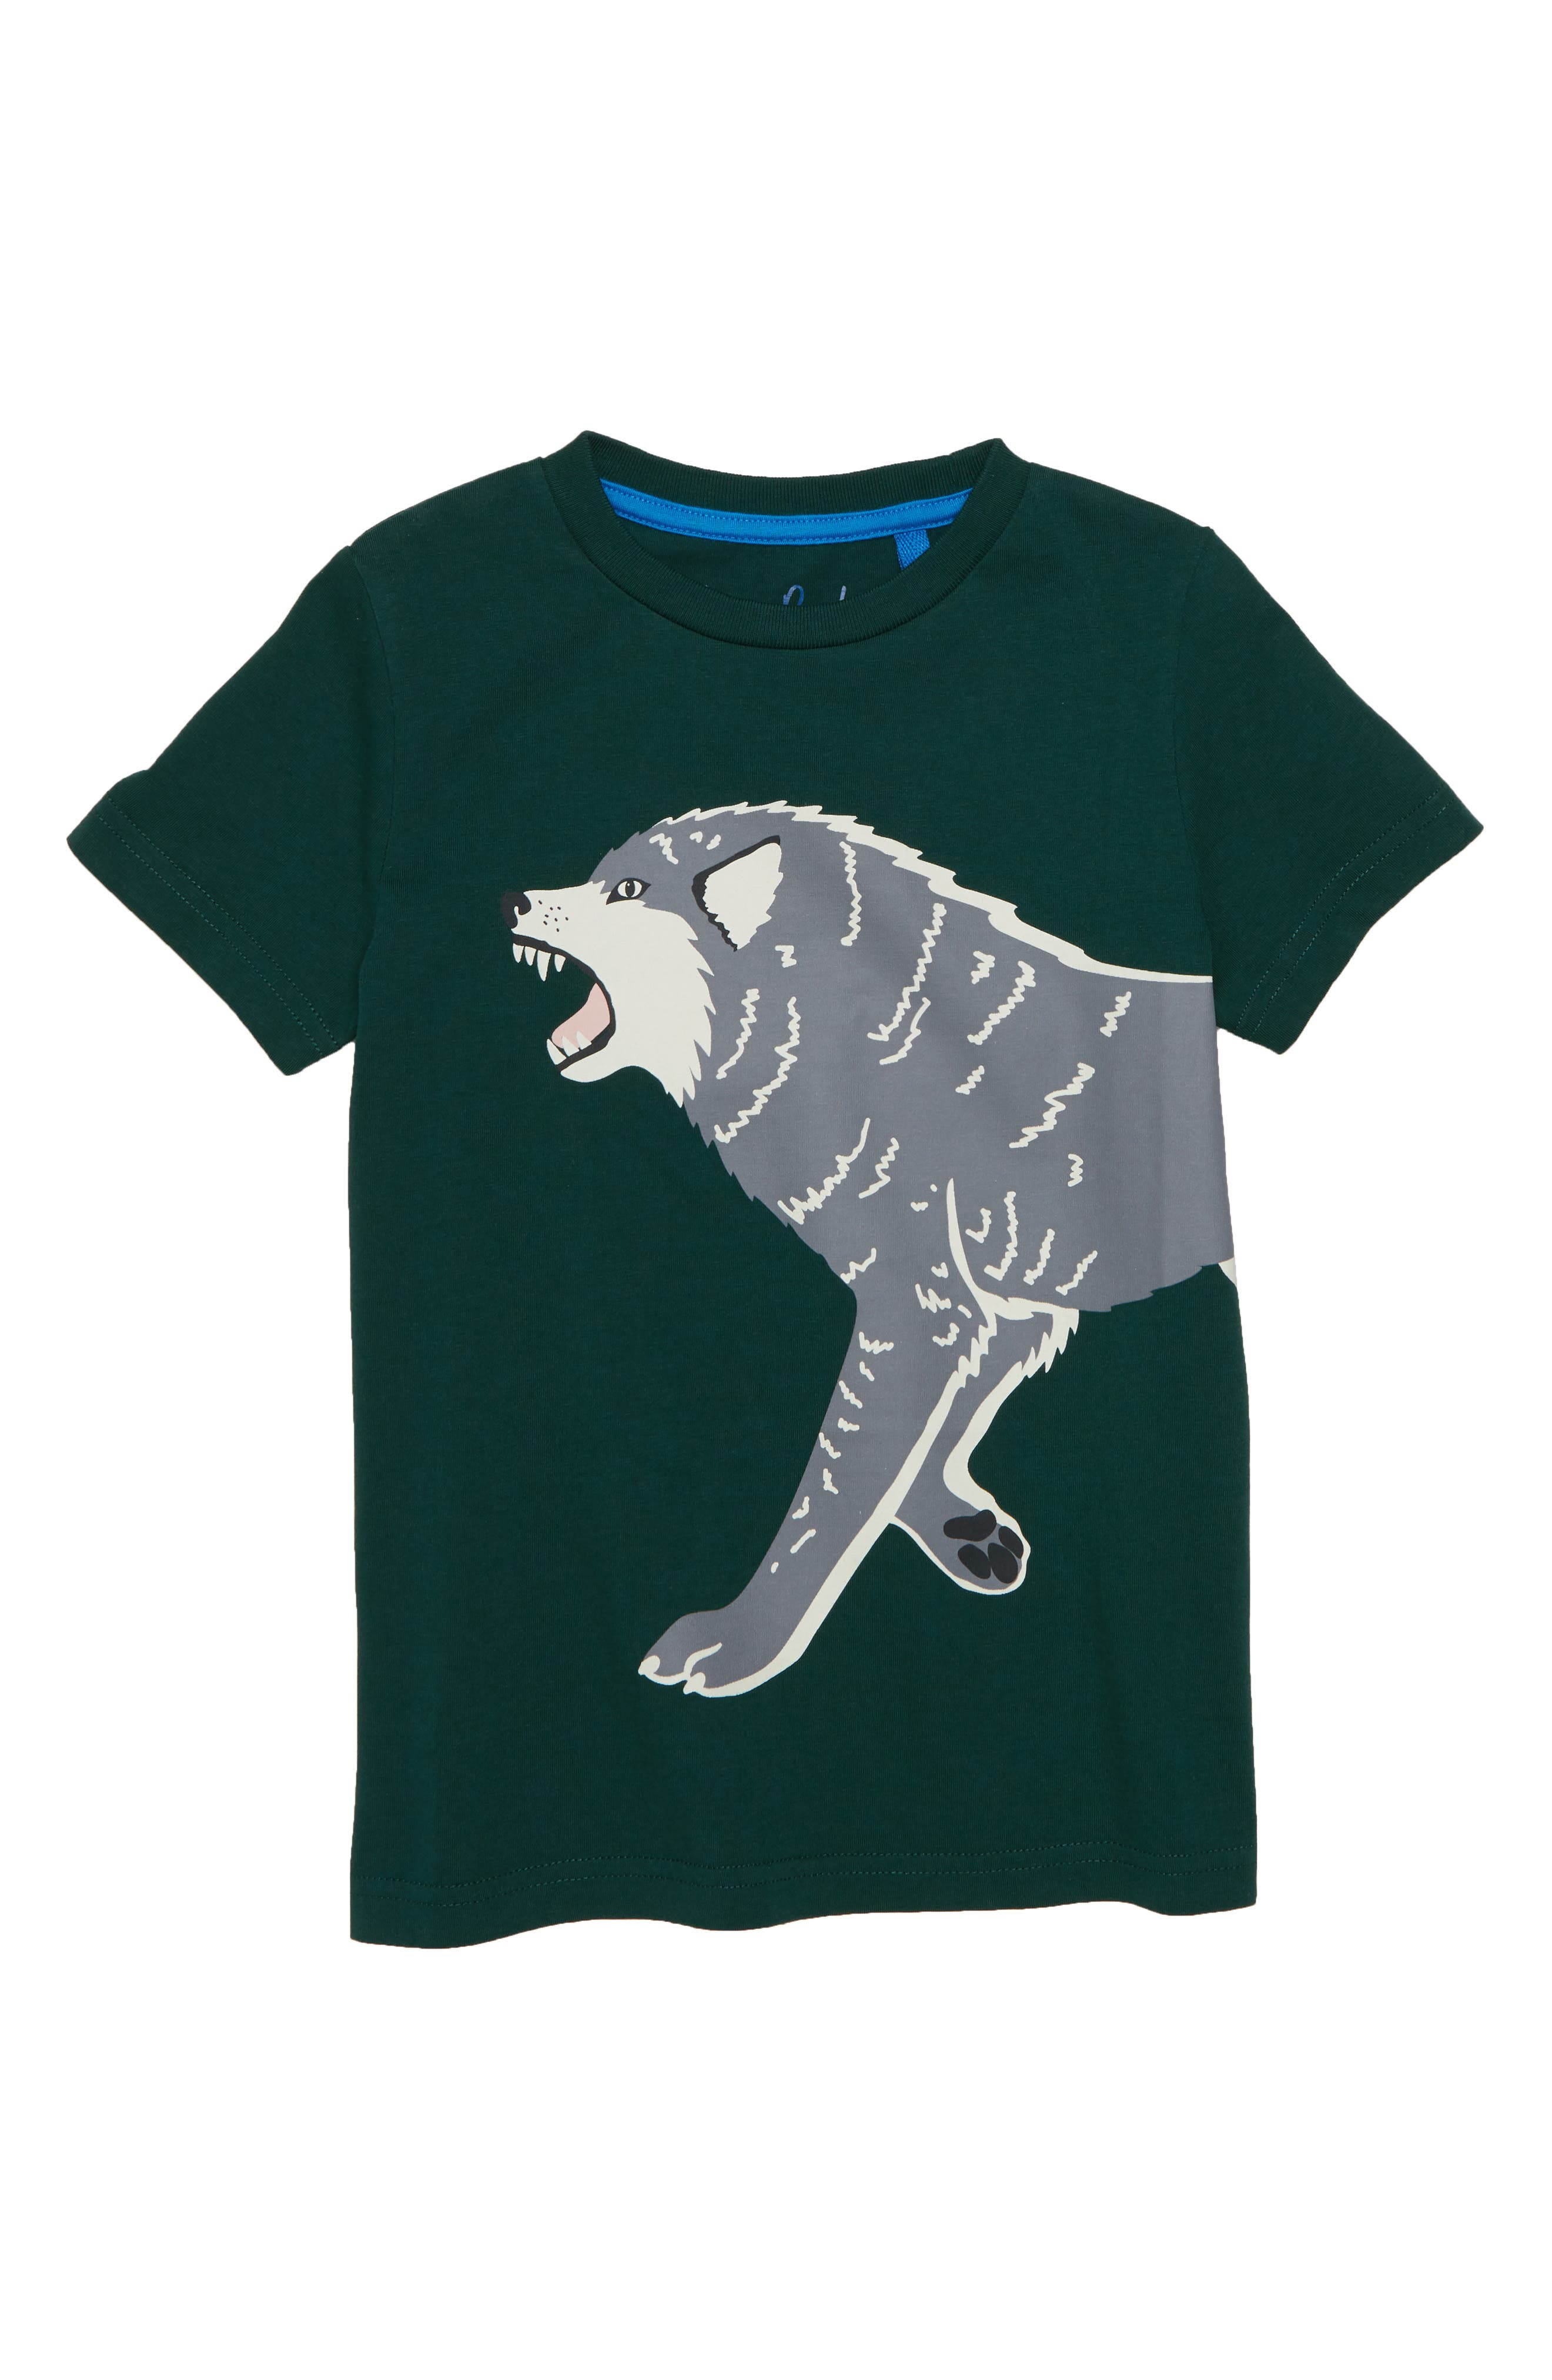 Glow in the Dark Wolf T-Shirt,                         Main,                         color, Scotts Pine Green